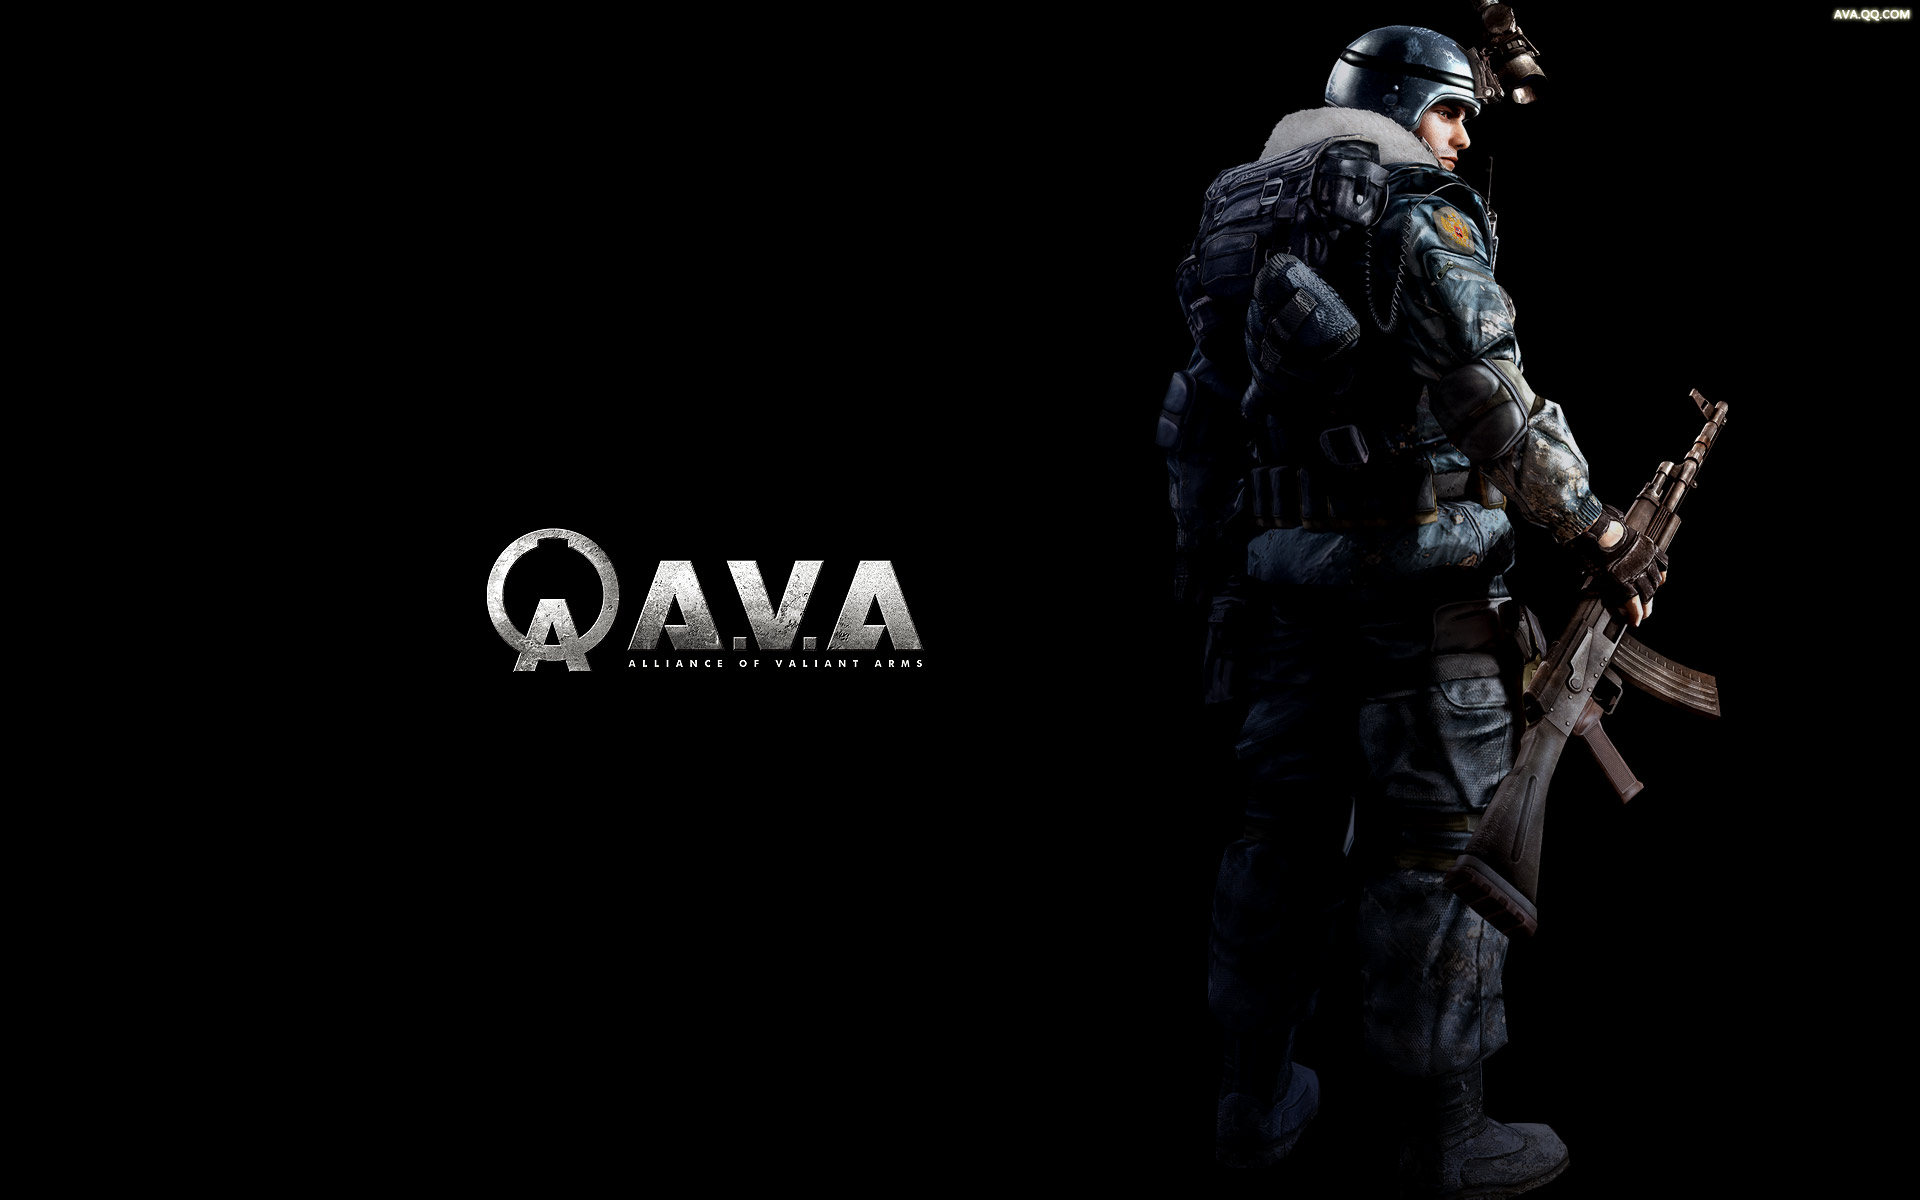 Wallpaper 17 Wallpaper from AVA Alliance of Valiant Arms 1920x1200